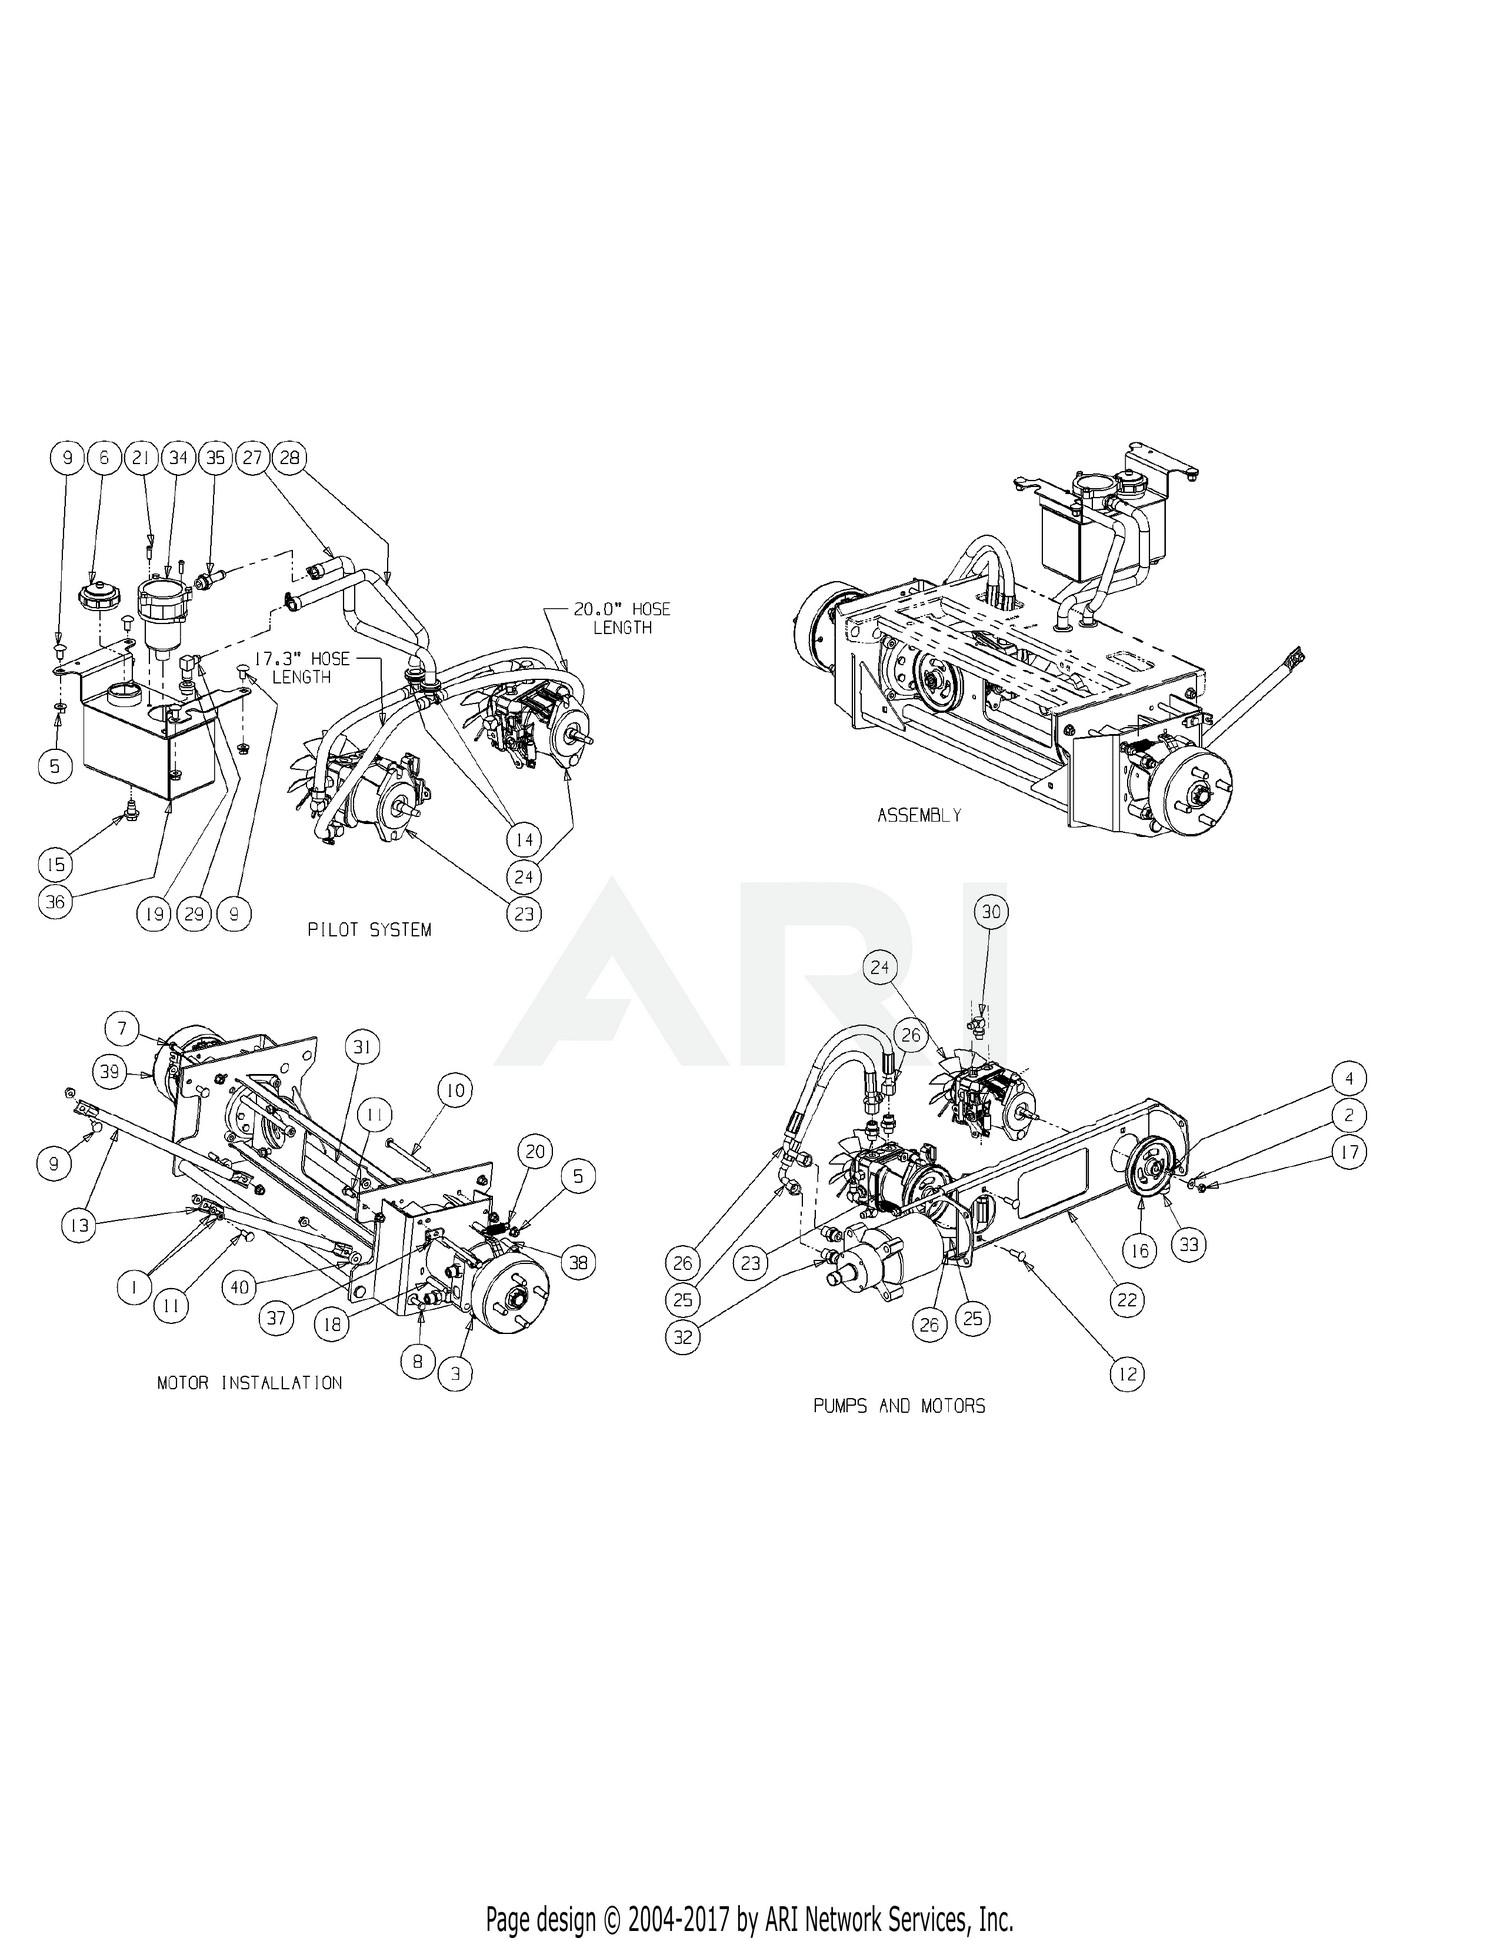 7 3 Powerstroke Parts Diagram Cub Cadet Parts Diagrams Cub Cadet M72 Ct 53al8ctz750 Tank 28 Of 7 3 Powerstroke Parts Diagram 1997 7 3l Engine Diagram Experts Wiring Diagram •